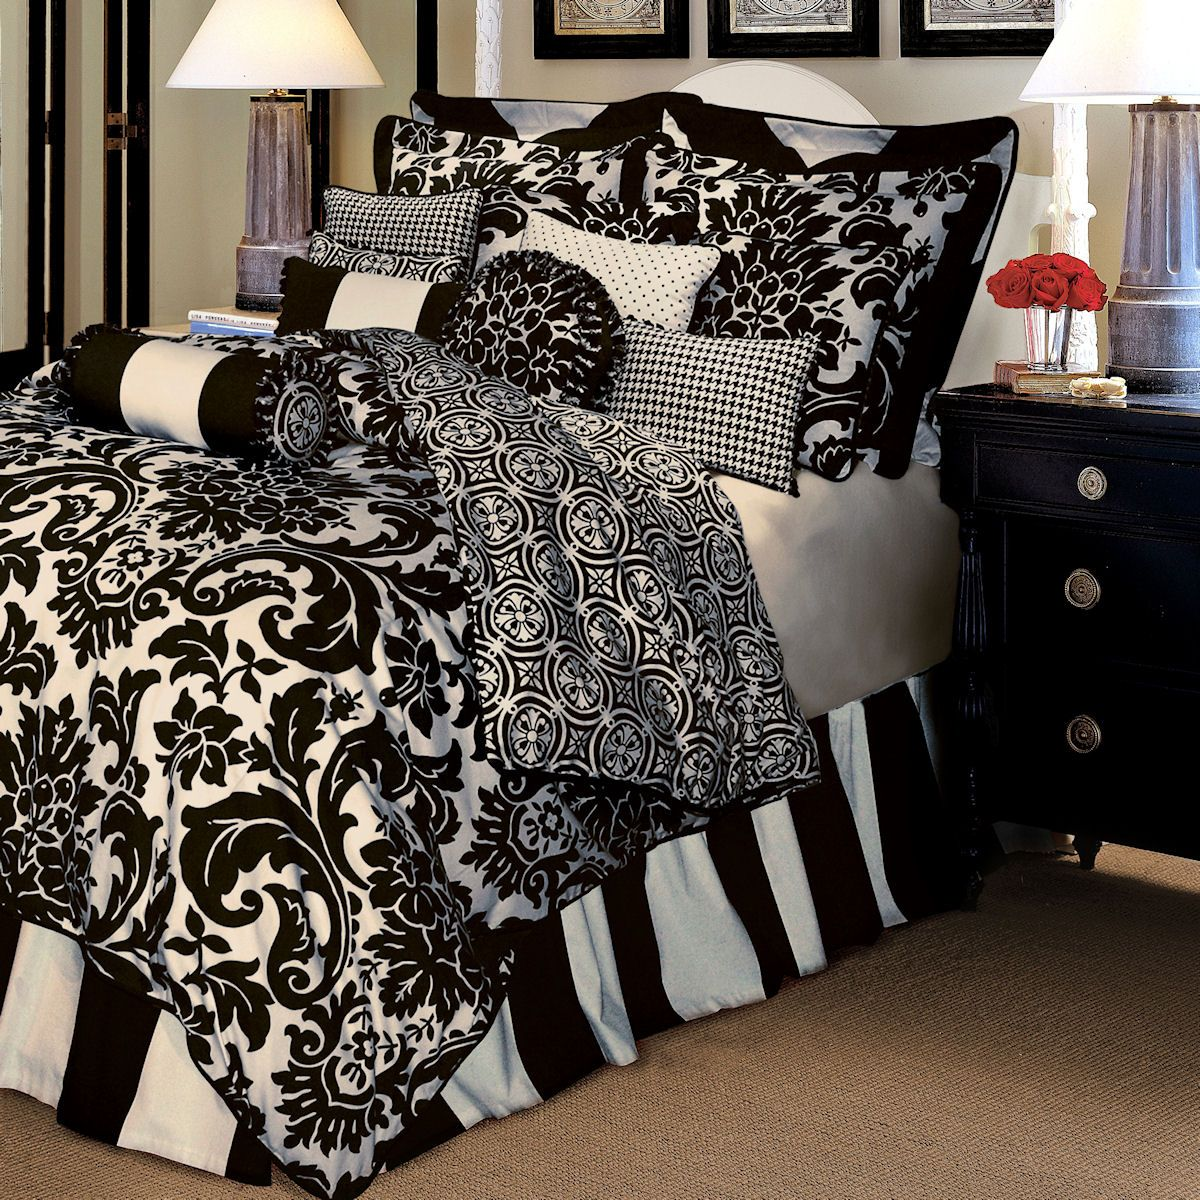 Image Detail For Comforter Sets Rose Tree Luxury Bedding